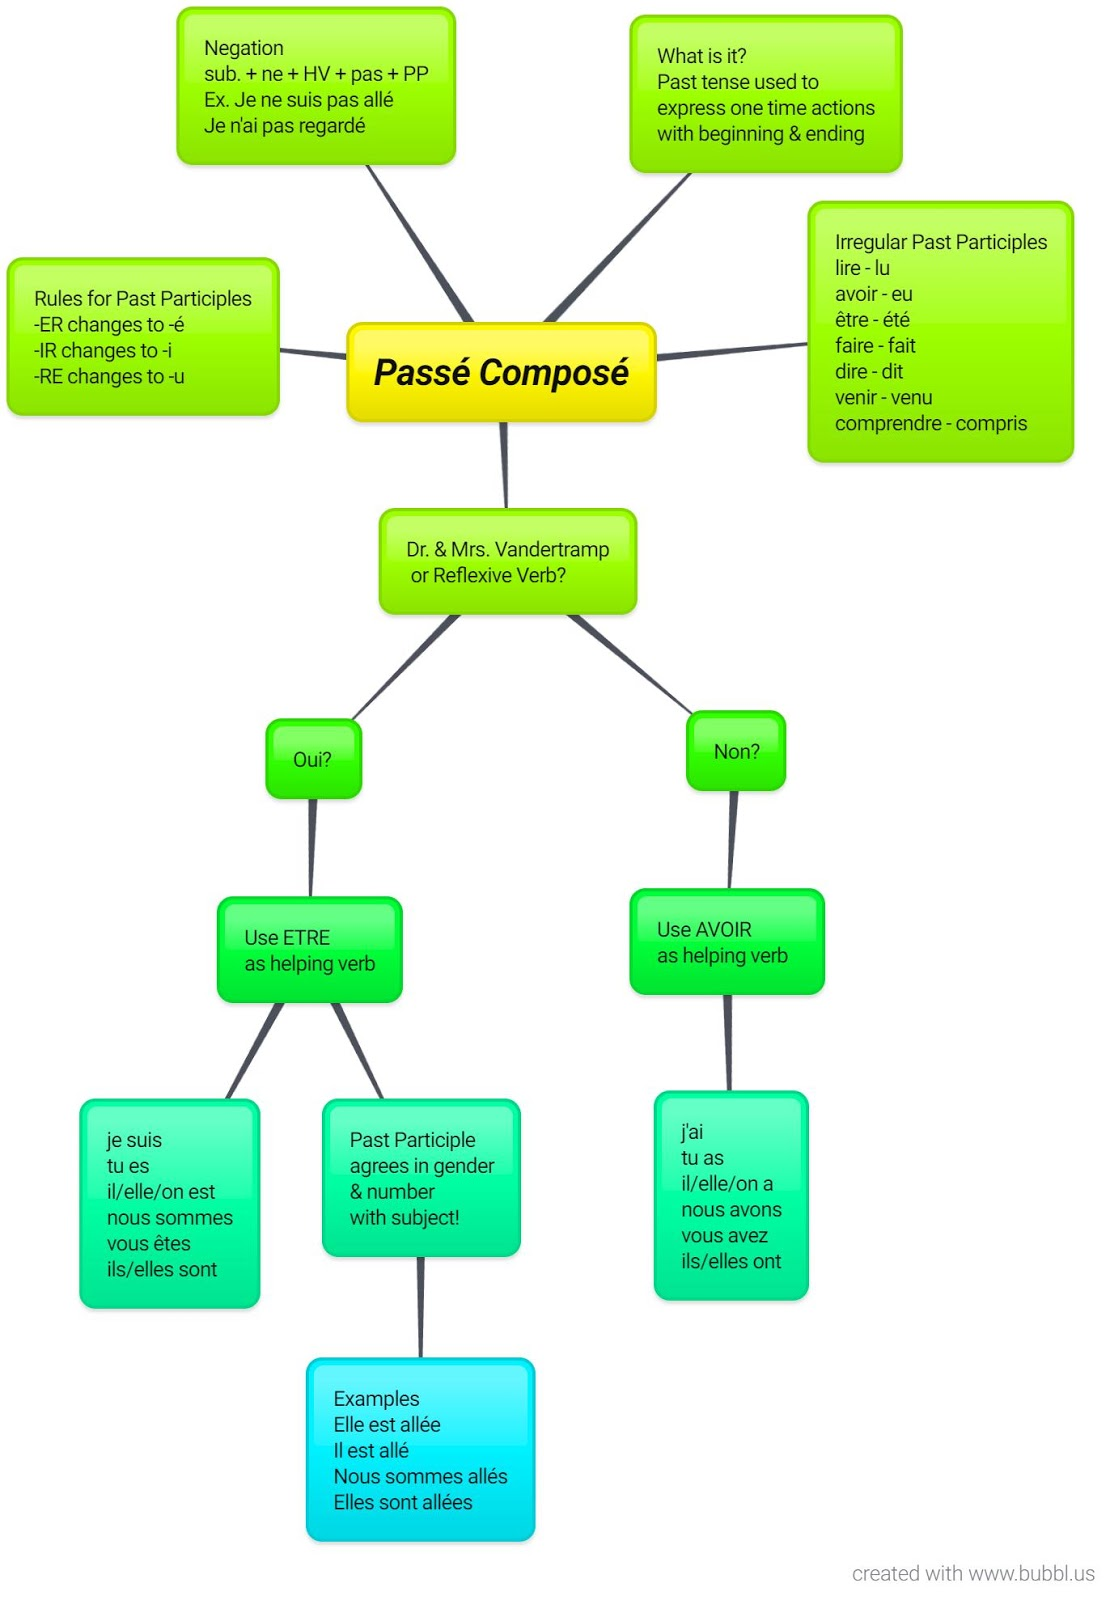 artifact include this content map and a link to the tool used in your blog